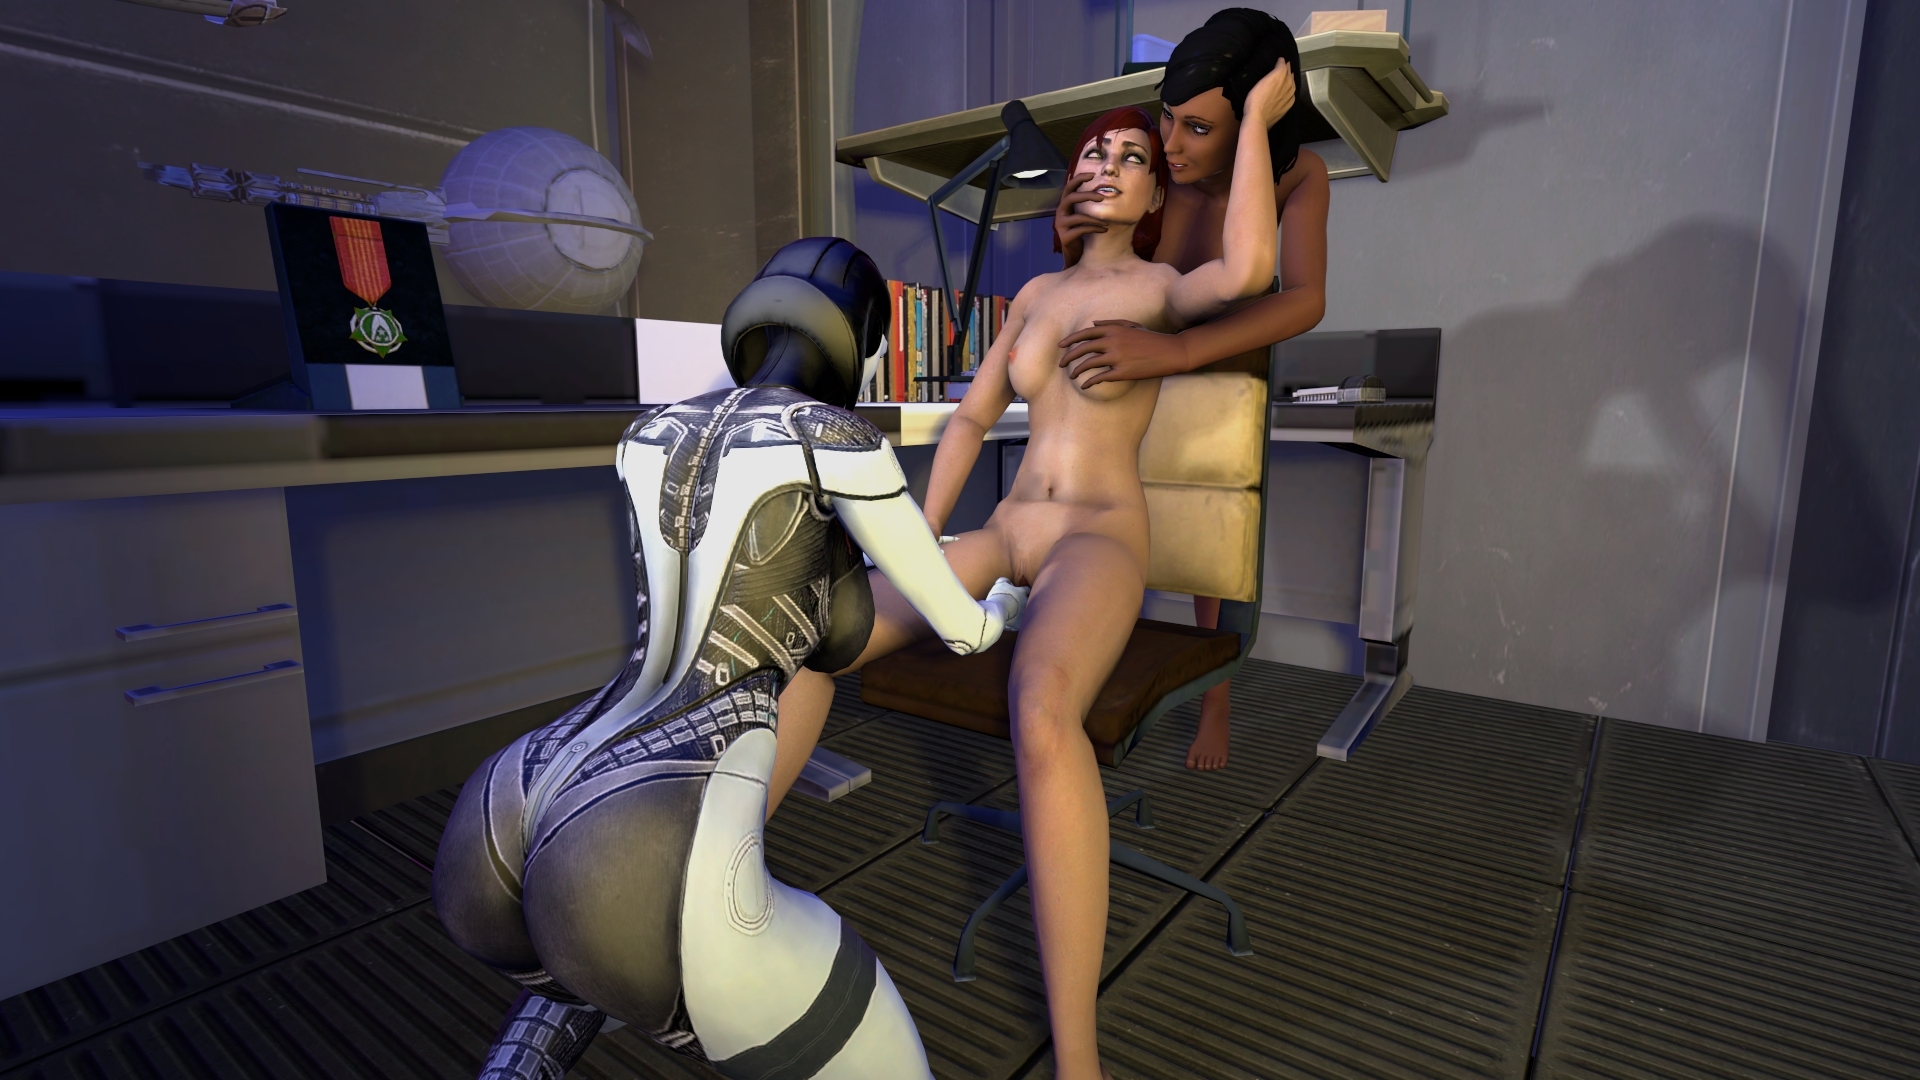 Liara off of mass effect naked henai adult comic